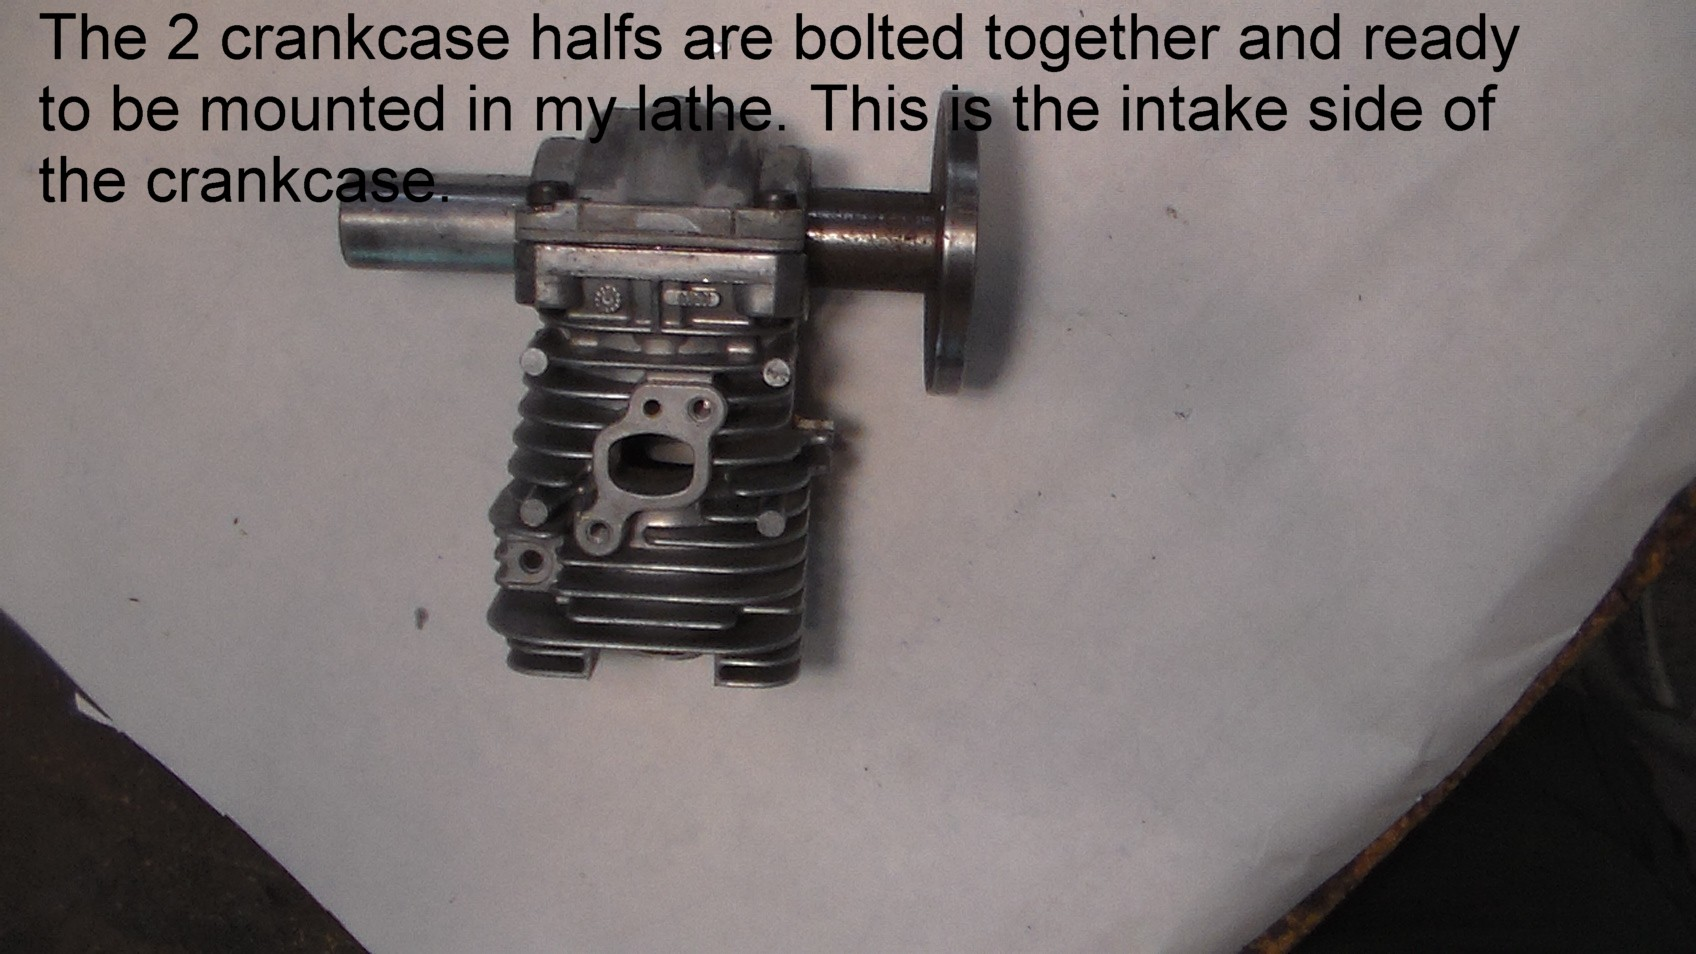 Click image for larger version  Name:Crankcase6.jpg Views:146 Size:287.0 KB ID:2194919